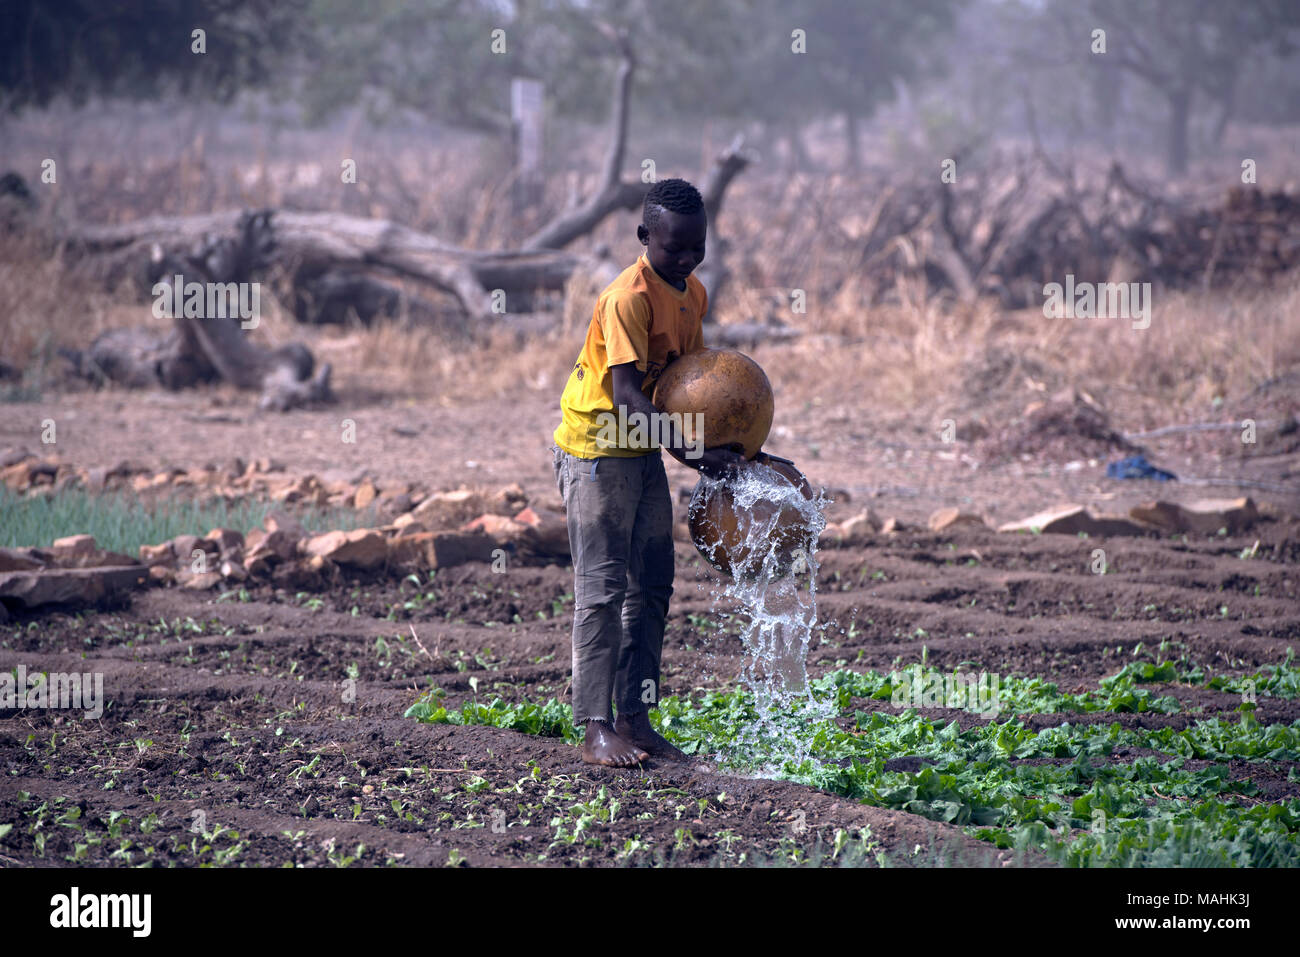 A young, indigenous Dogon tribe boy uses calabashes to water lettuce in a garden. Dogon country, Mali, West Africa. - Stock Image